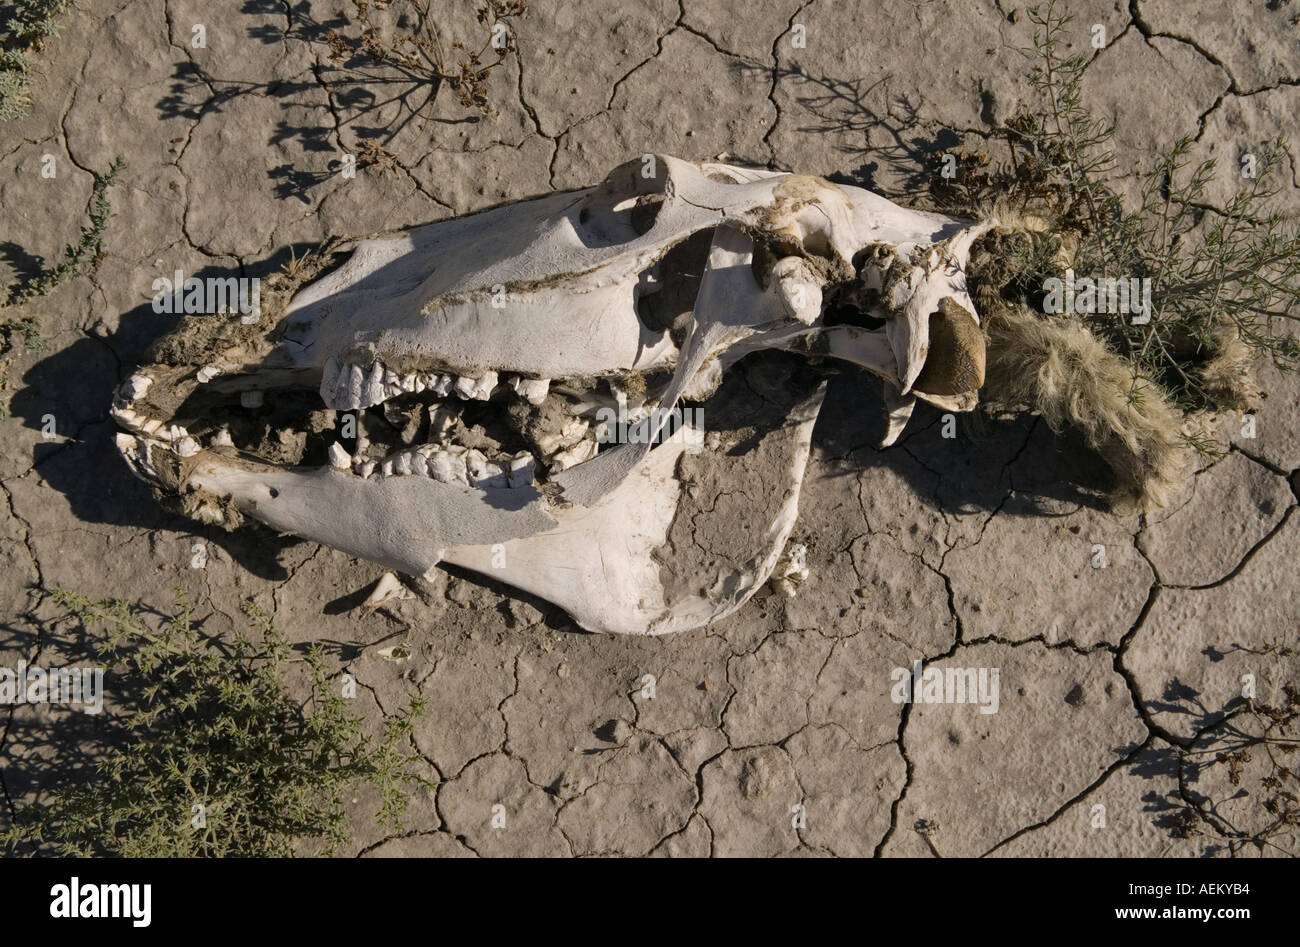 76c63630707c Dead horse skull on a dry lake bed Stock Photo: 4476851 - Alamy